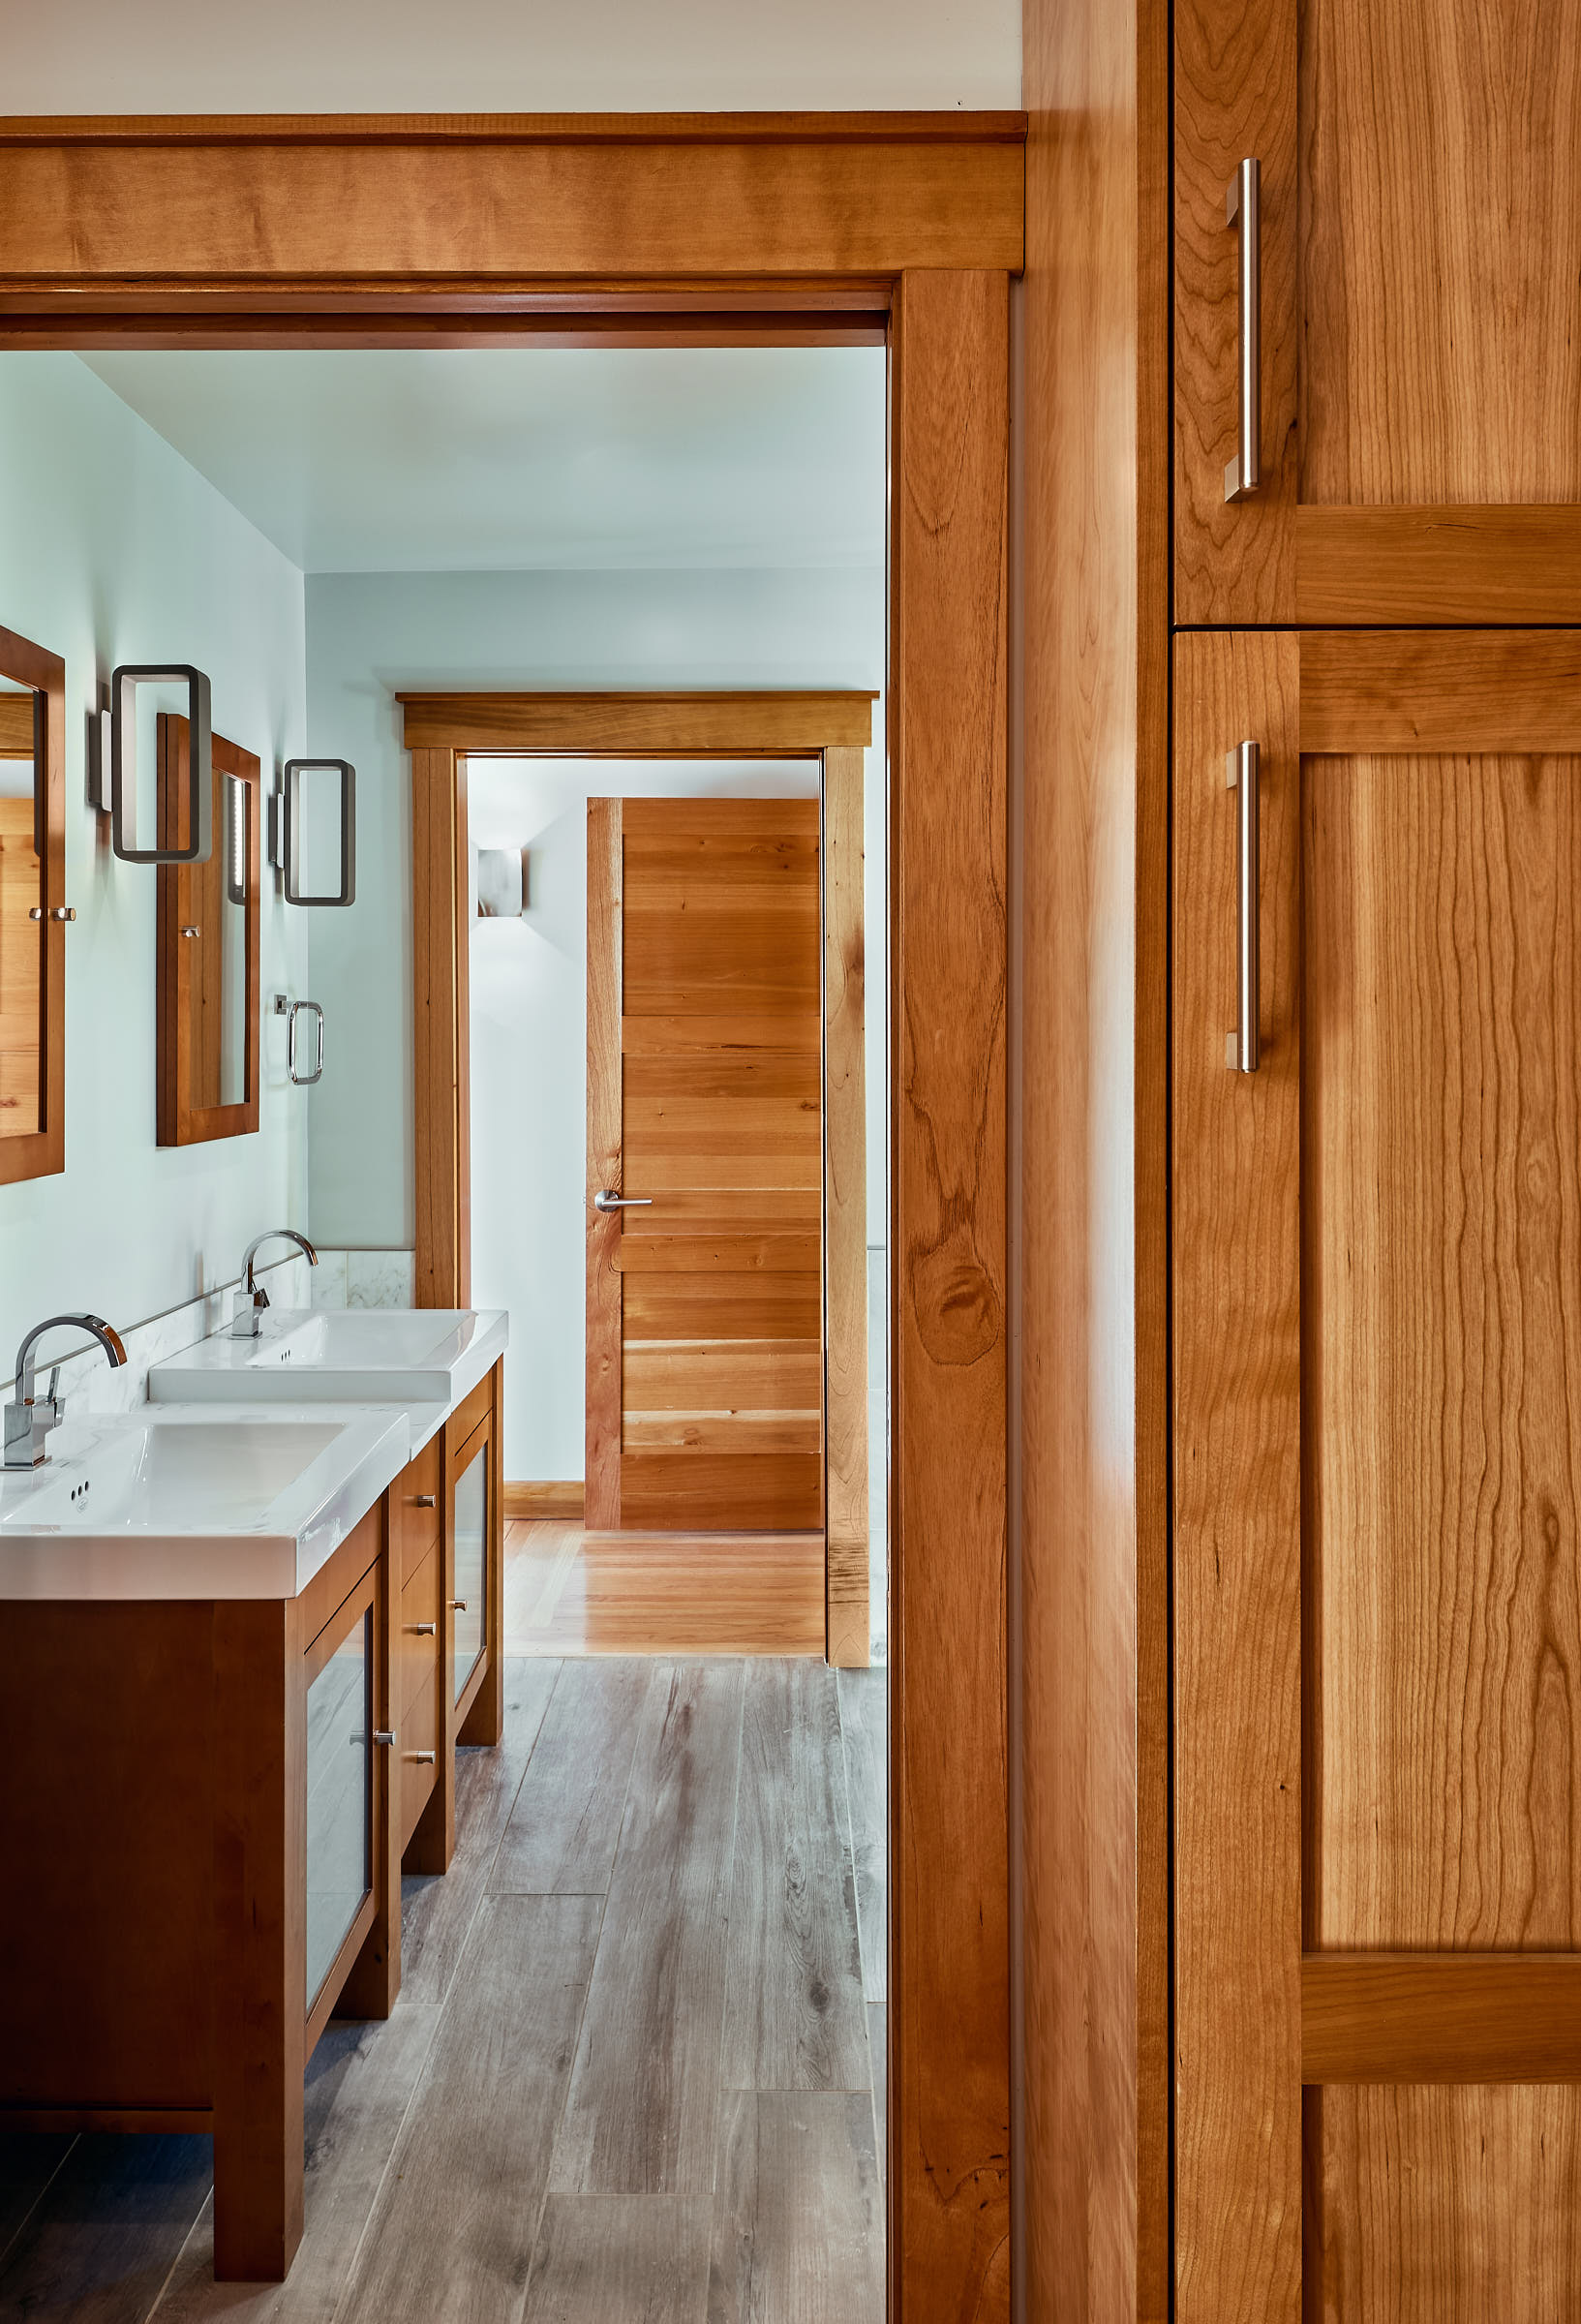 The warmth of the Spanish Cedar doors and cabinets, accent the Grey Porcelain Tiles in this Master Bathroom.